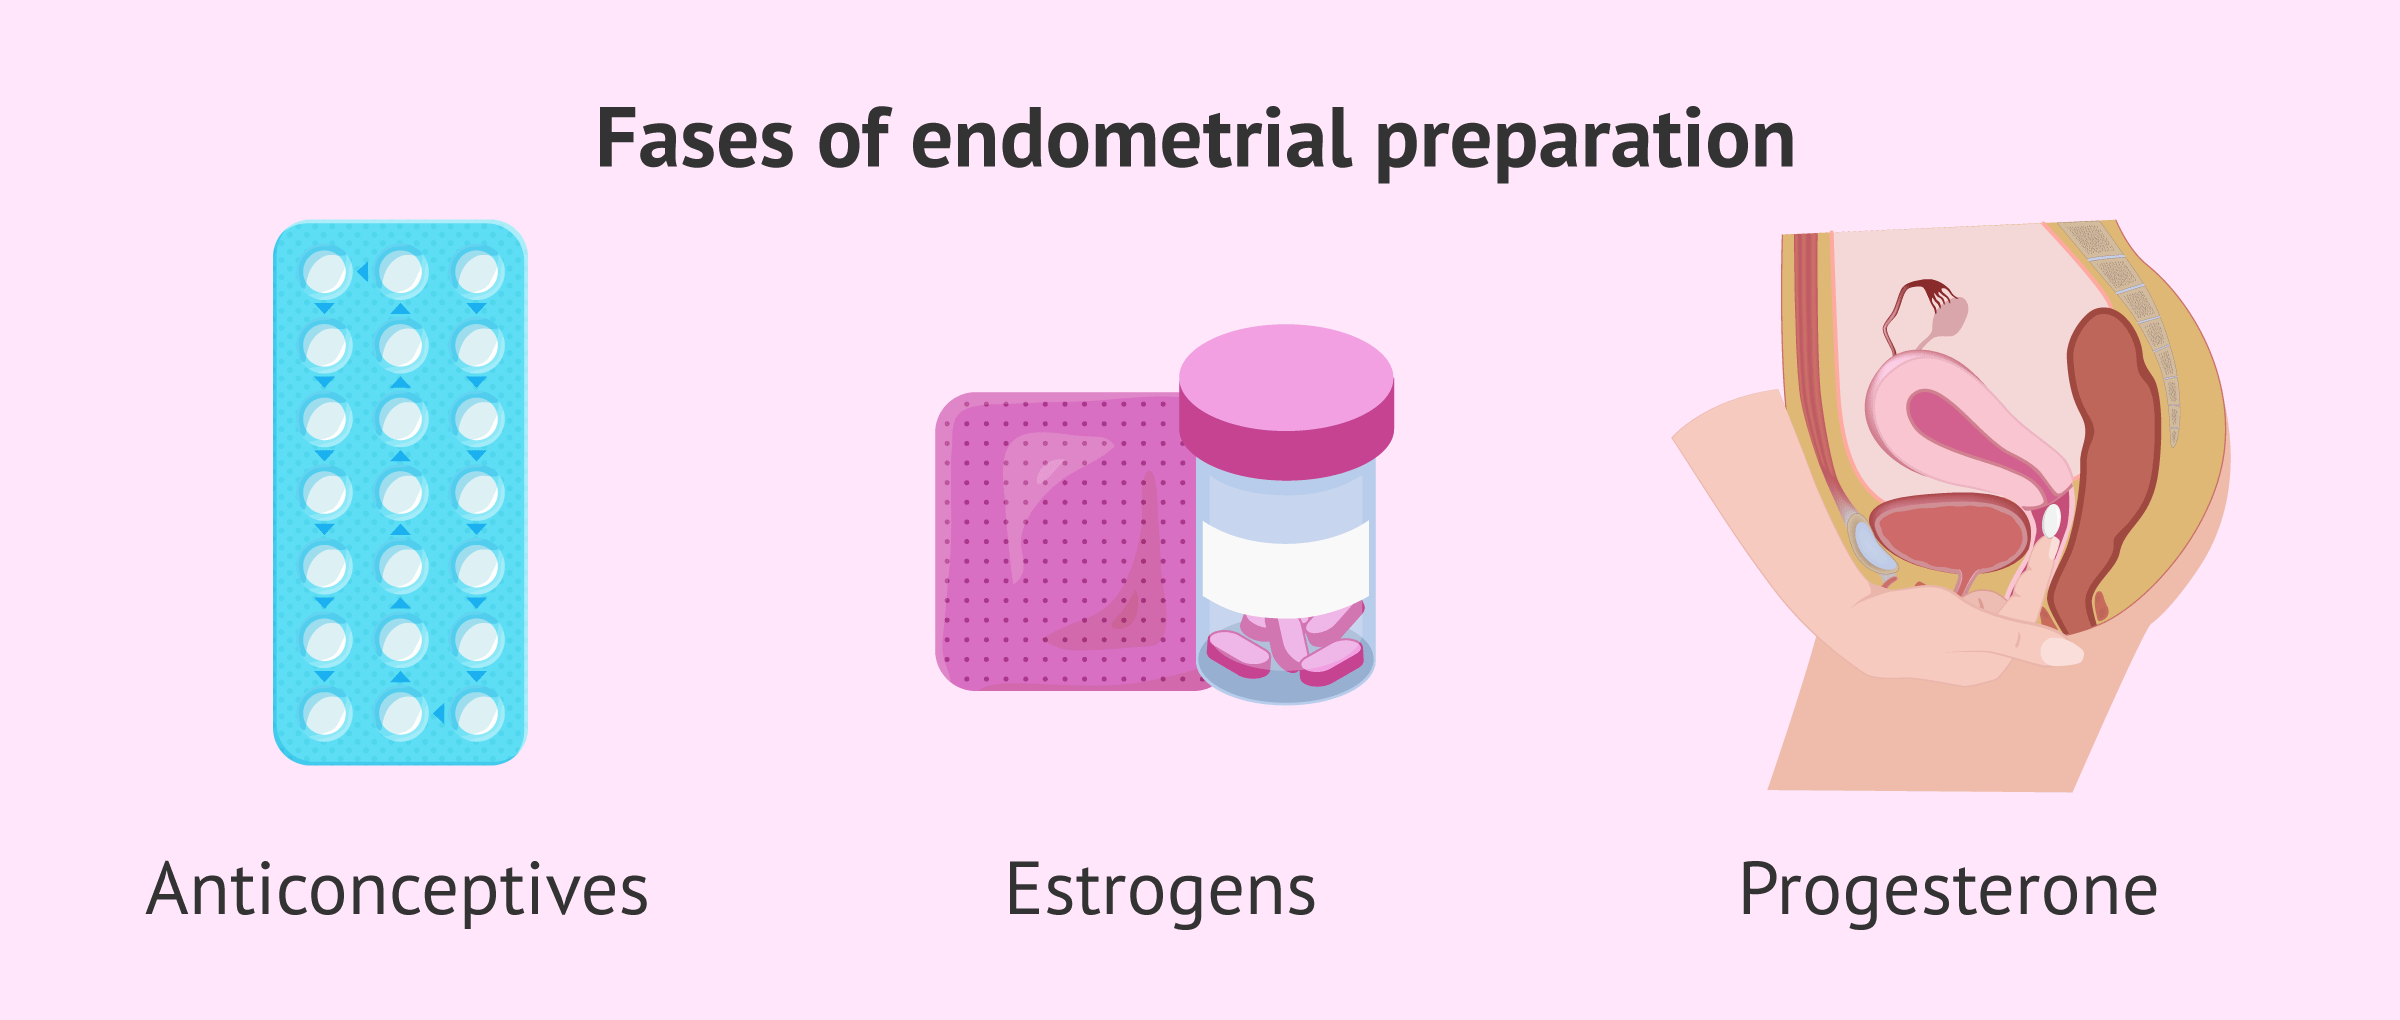 Medication for preparing endometrium